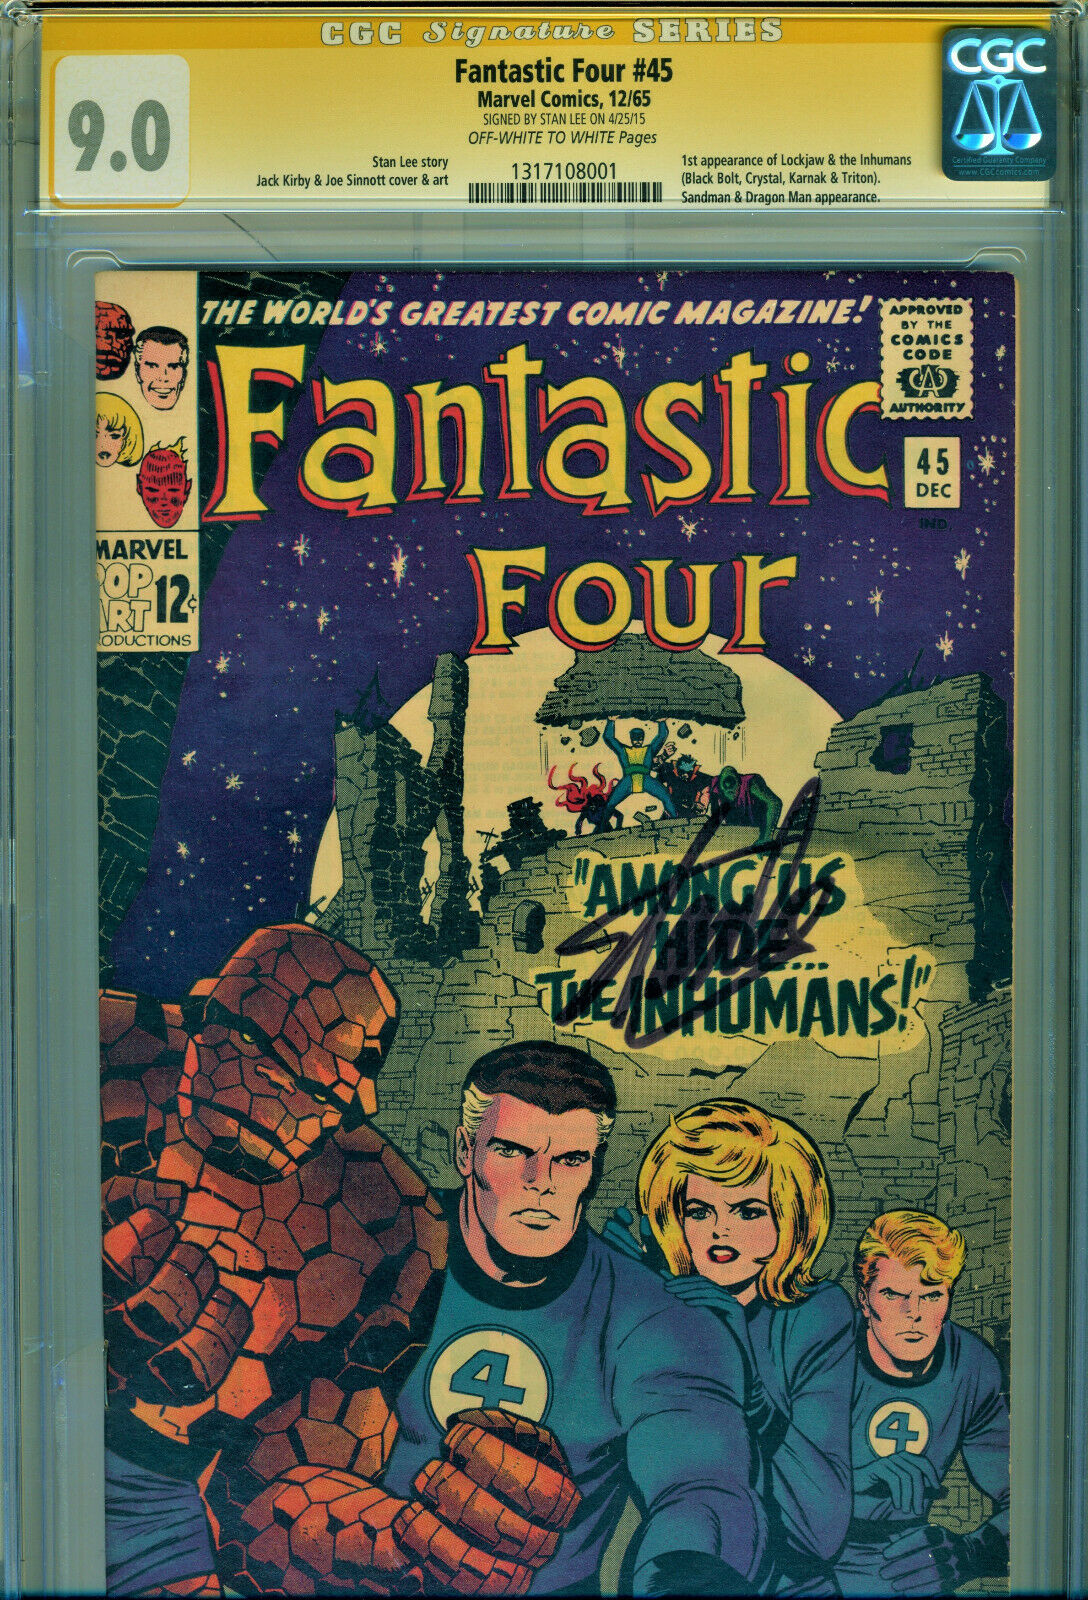 FANTASTIC FOUR 45 CGC 90 SS SIGNED BY STAN LEE 1ST APPEARANCE OF INHUMANS